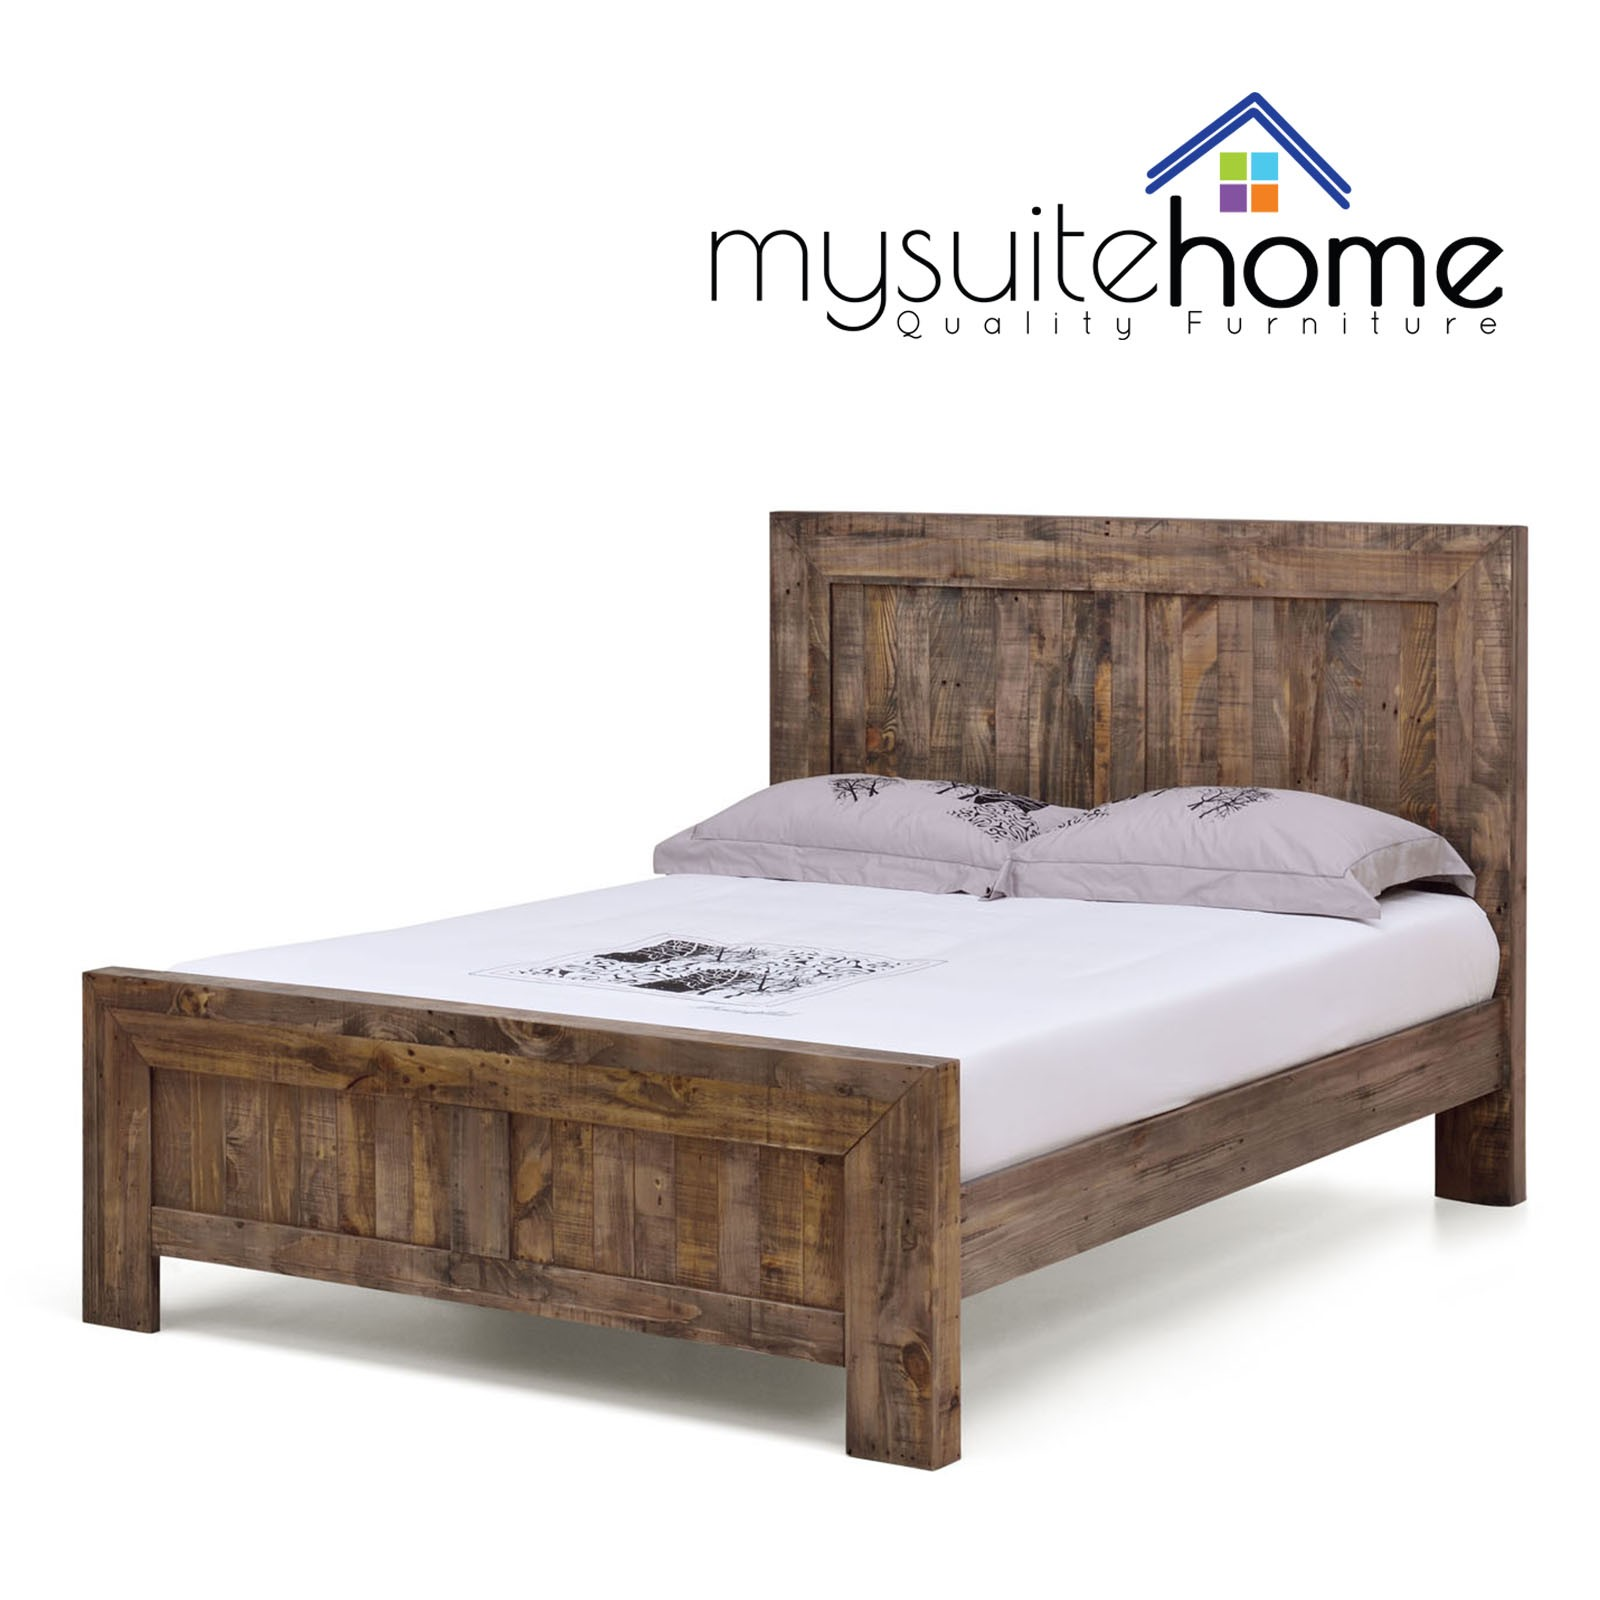 boston brand new recycled solid pine rustic timber double size bed frame - Pine Bed Frame